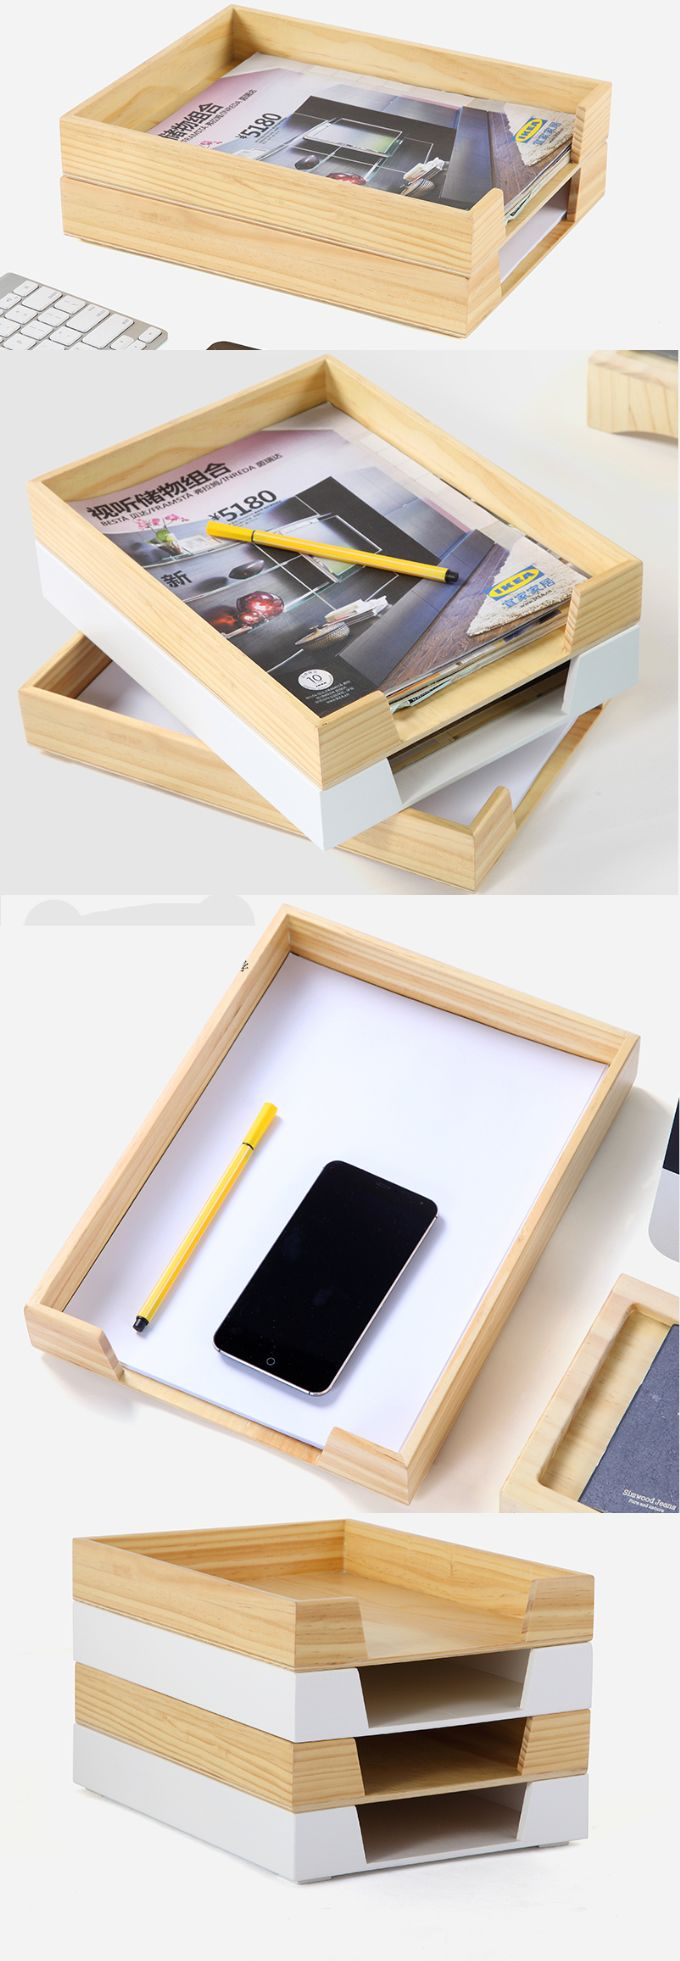 Bamboo Wooden A4 Print Papers Magazine File